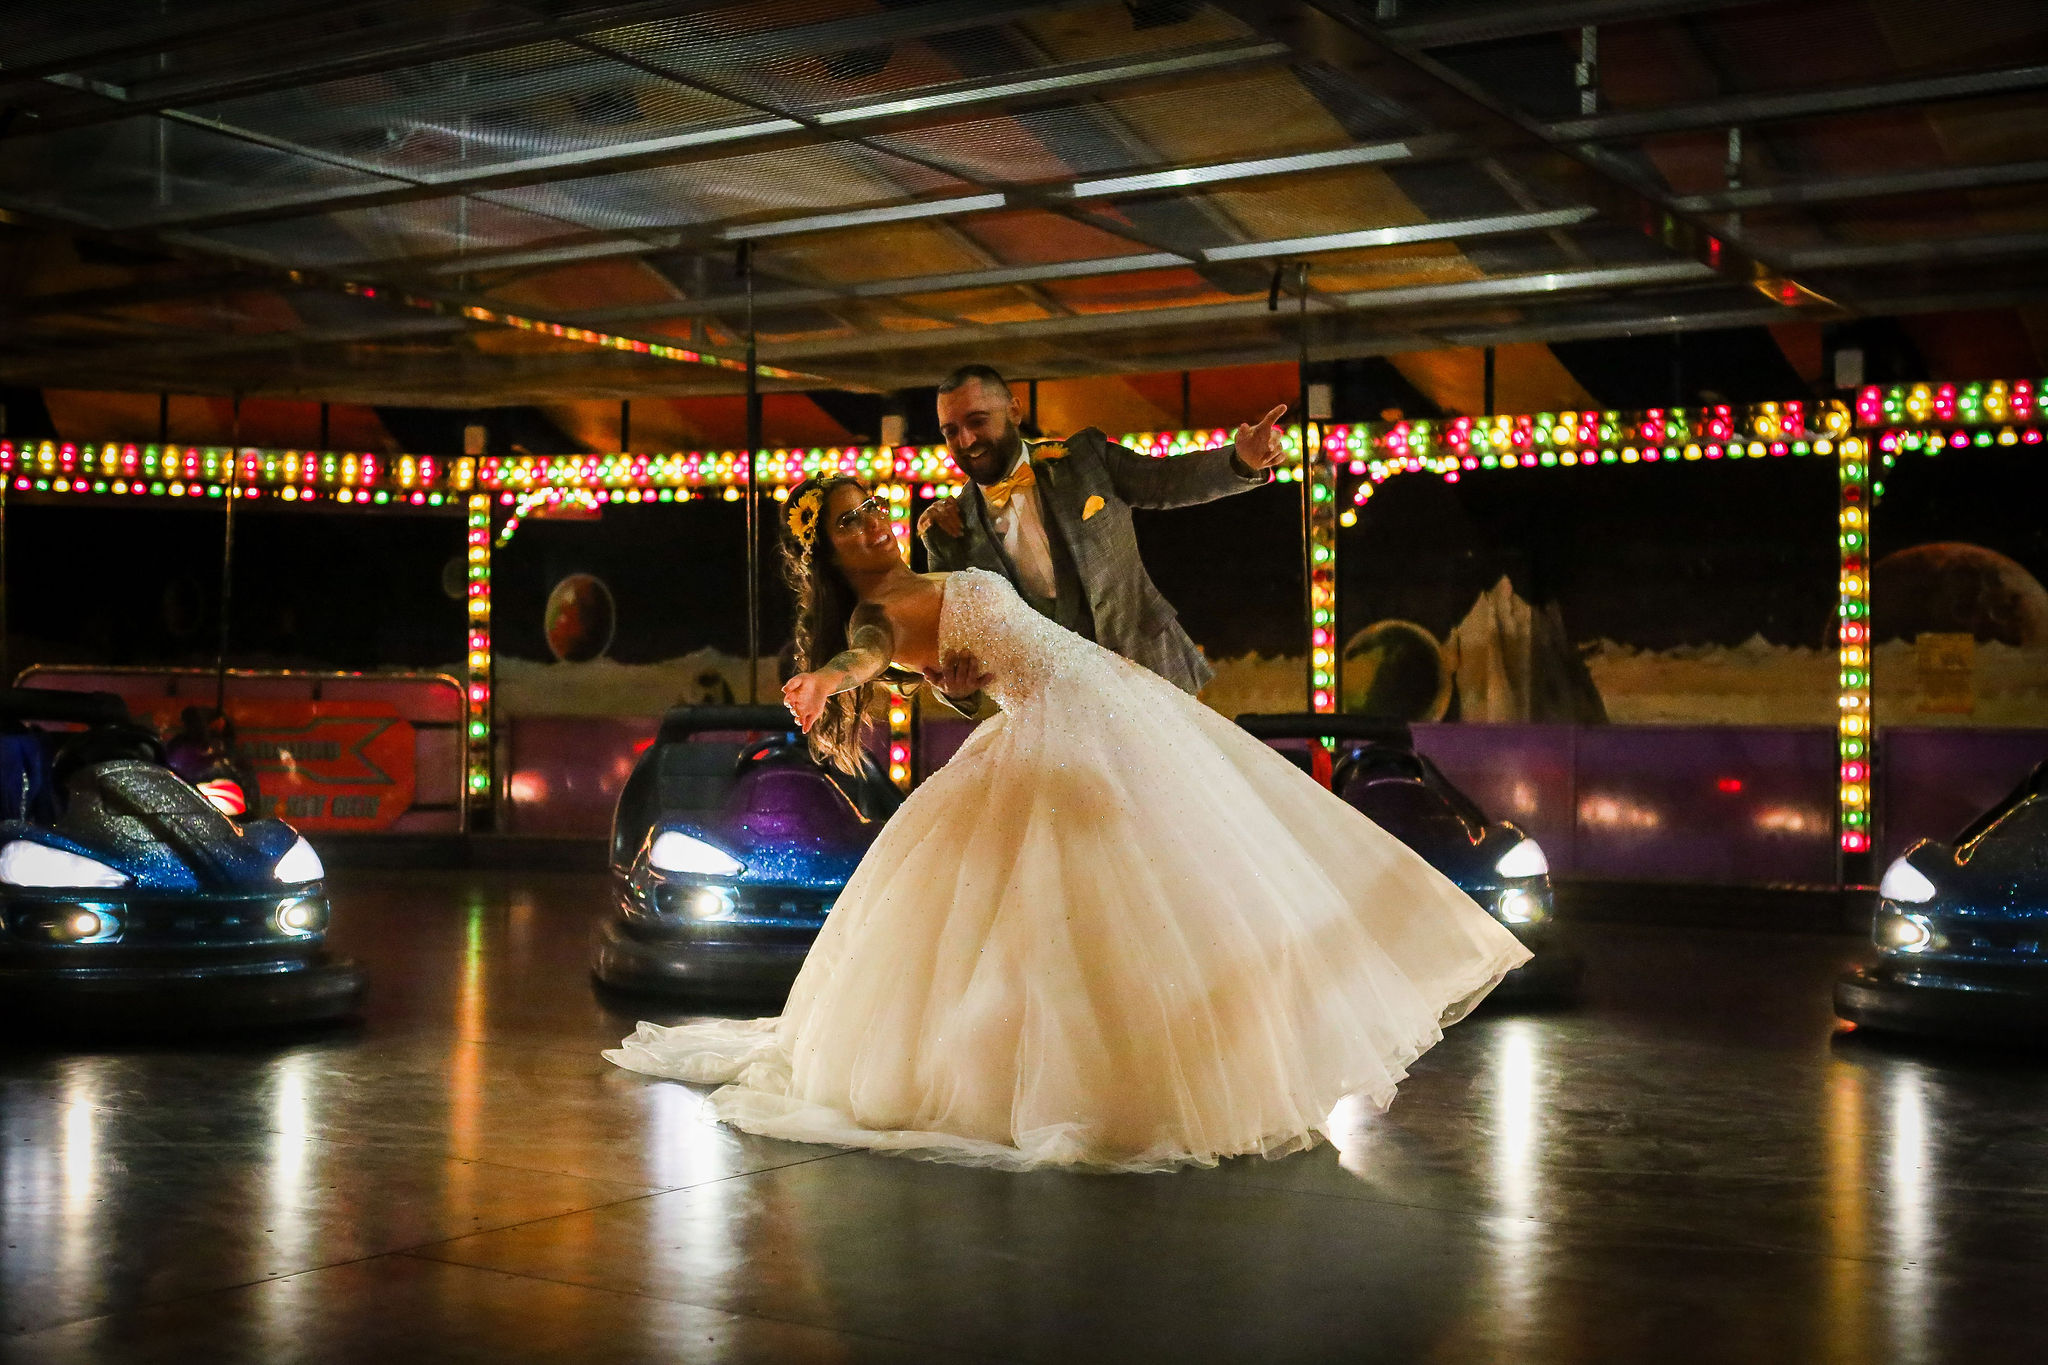 Harriet&Rhys Wedding - quirky wedding with dodgems (61)